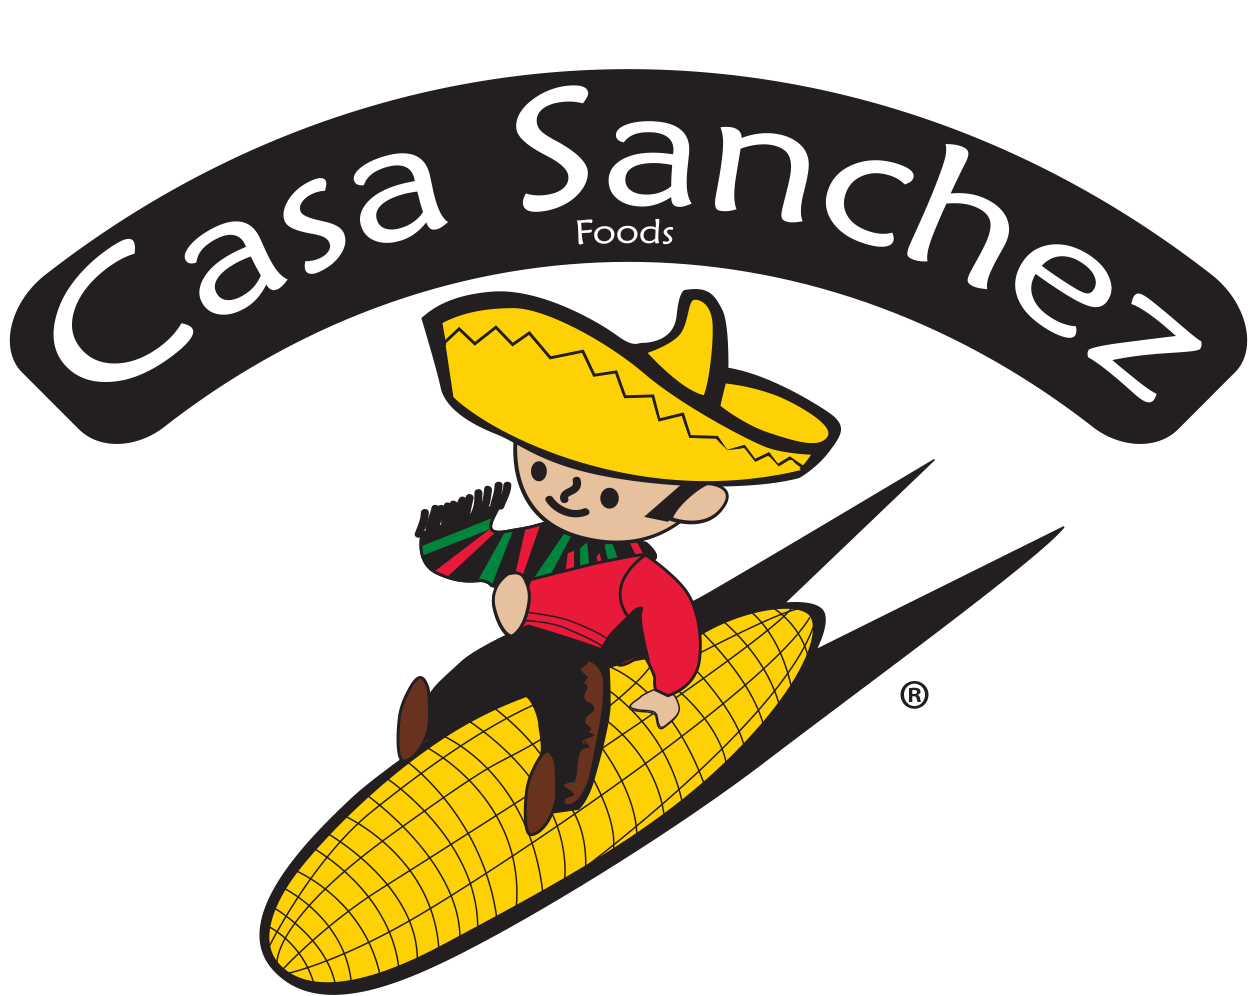 Casa Sanchez Foods